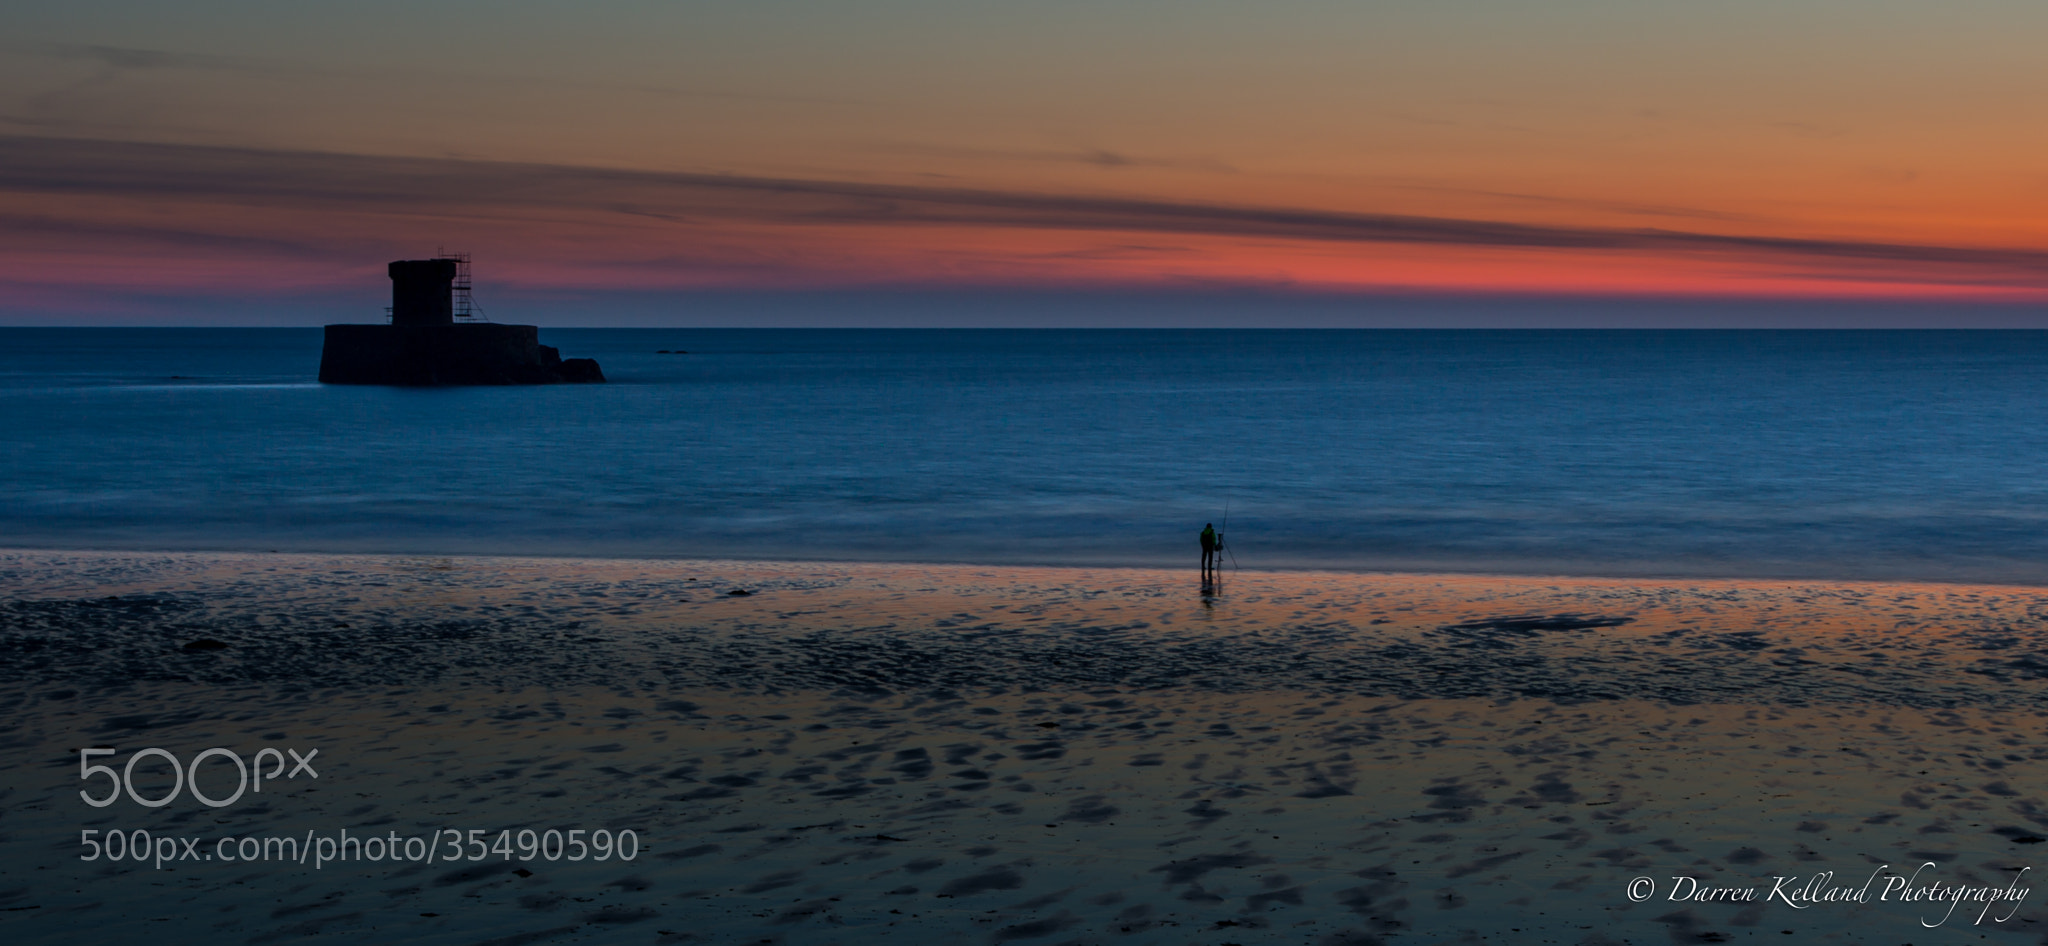 Photograph The lonely fisherman by Darren Kelland on 500px